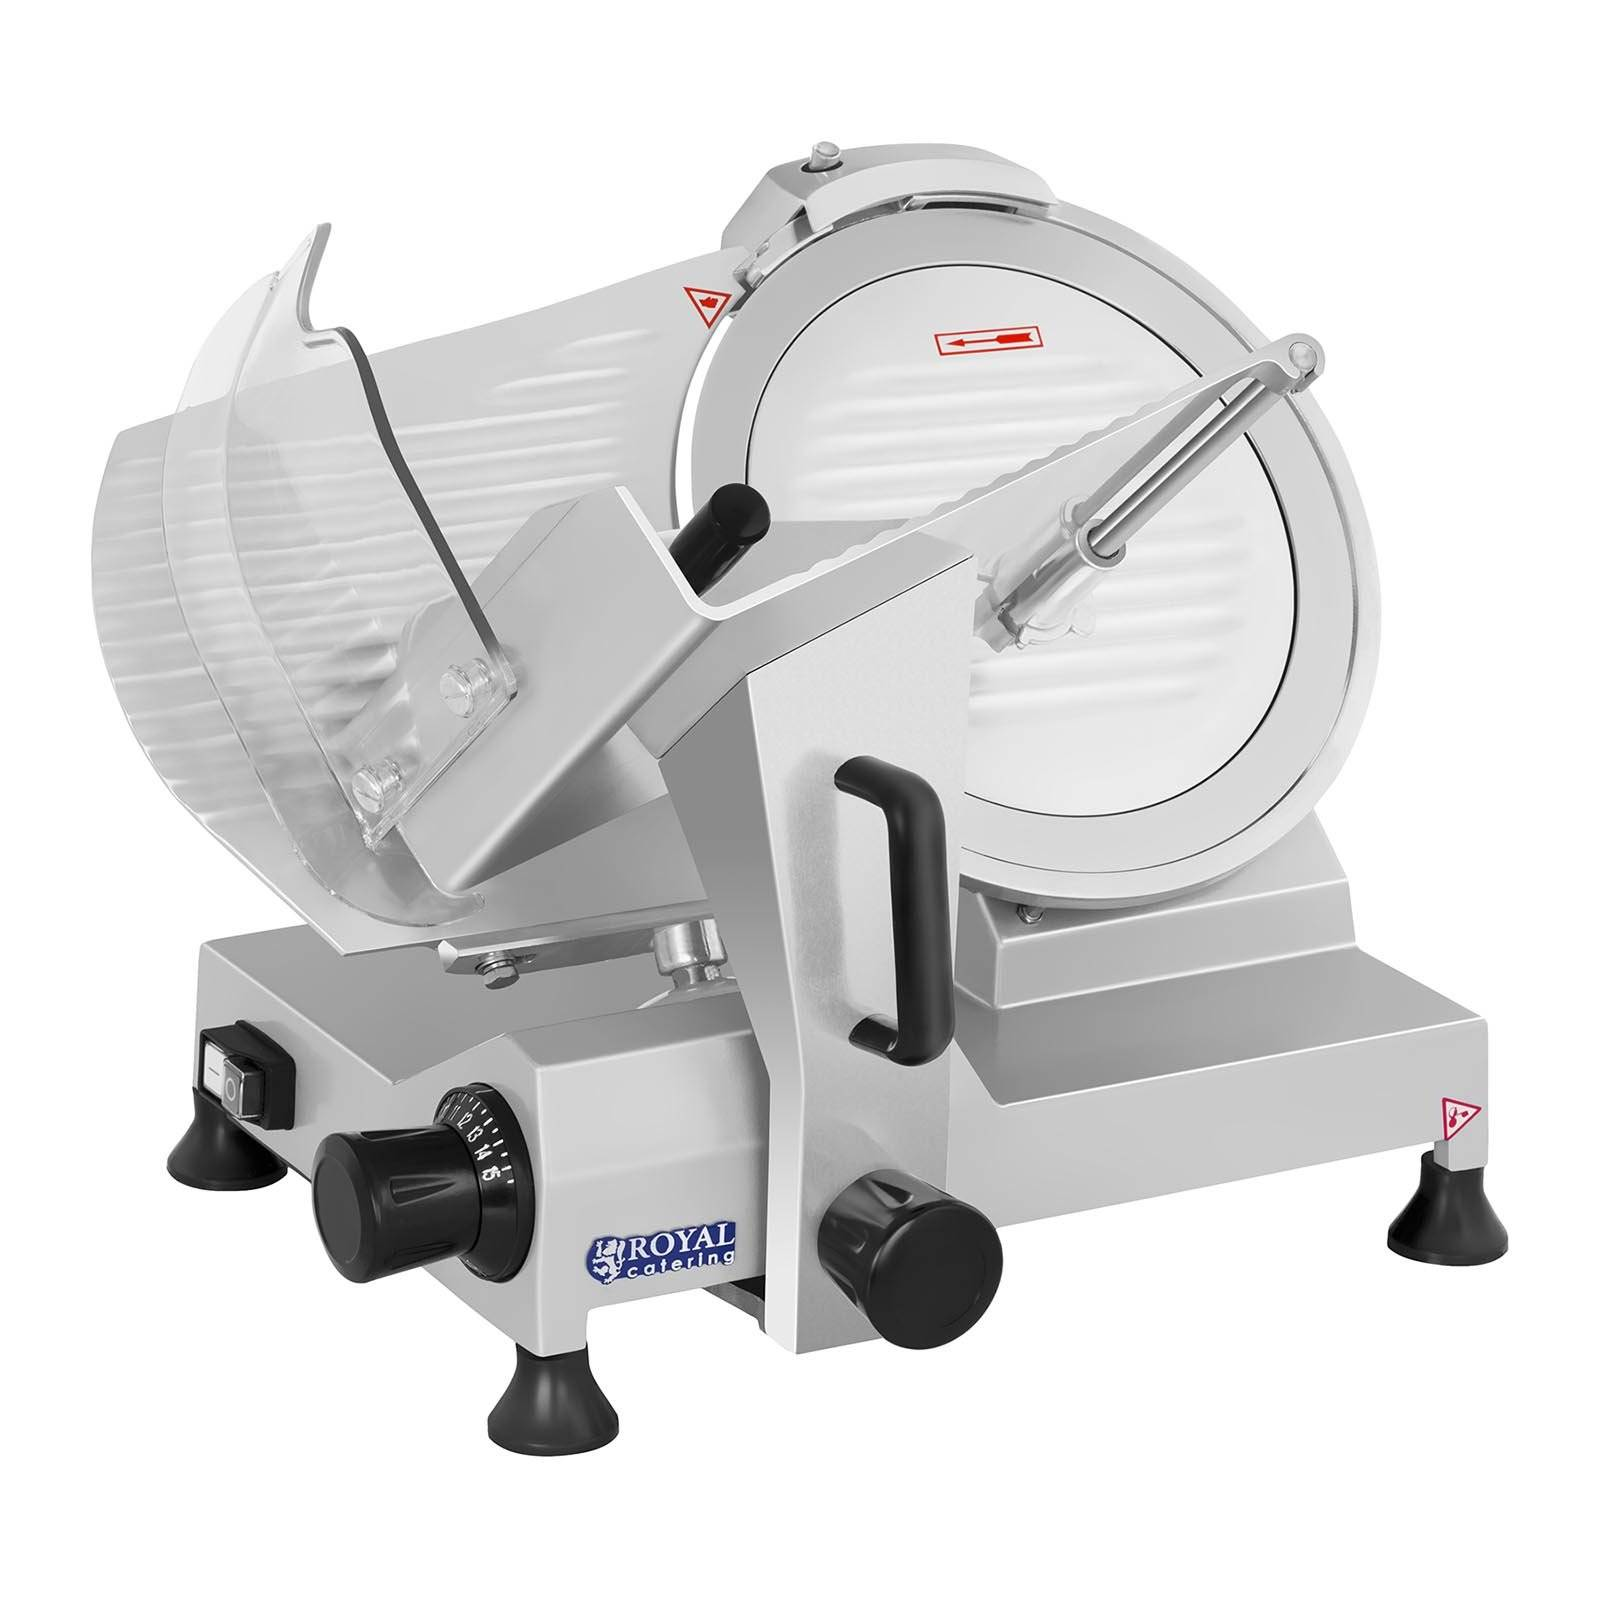 Royal Catering Affettatrice - 300 mm - fino a 15 mm - 250 W RCAM-300